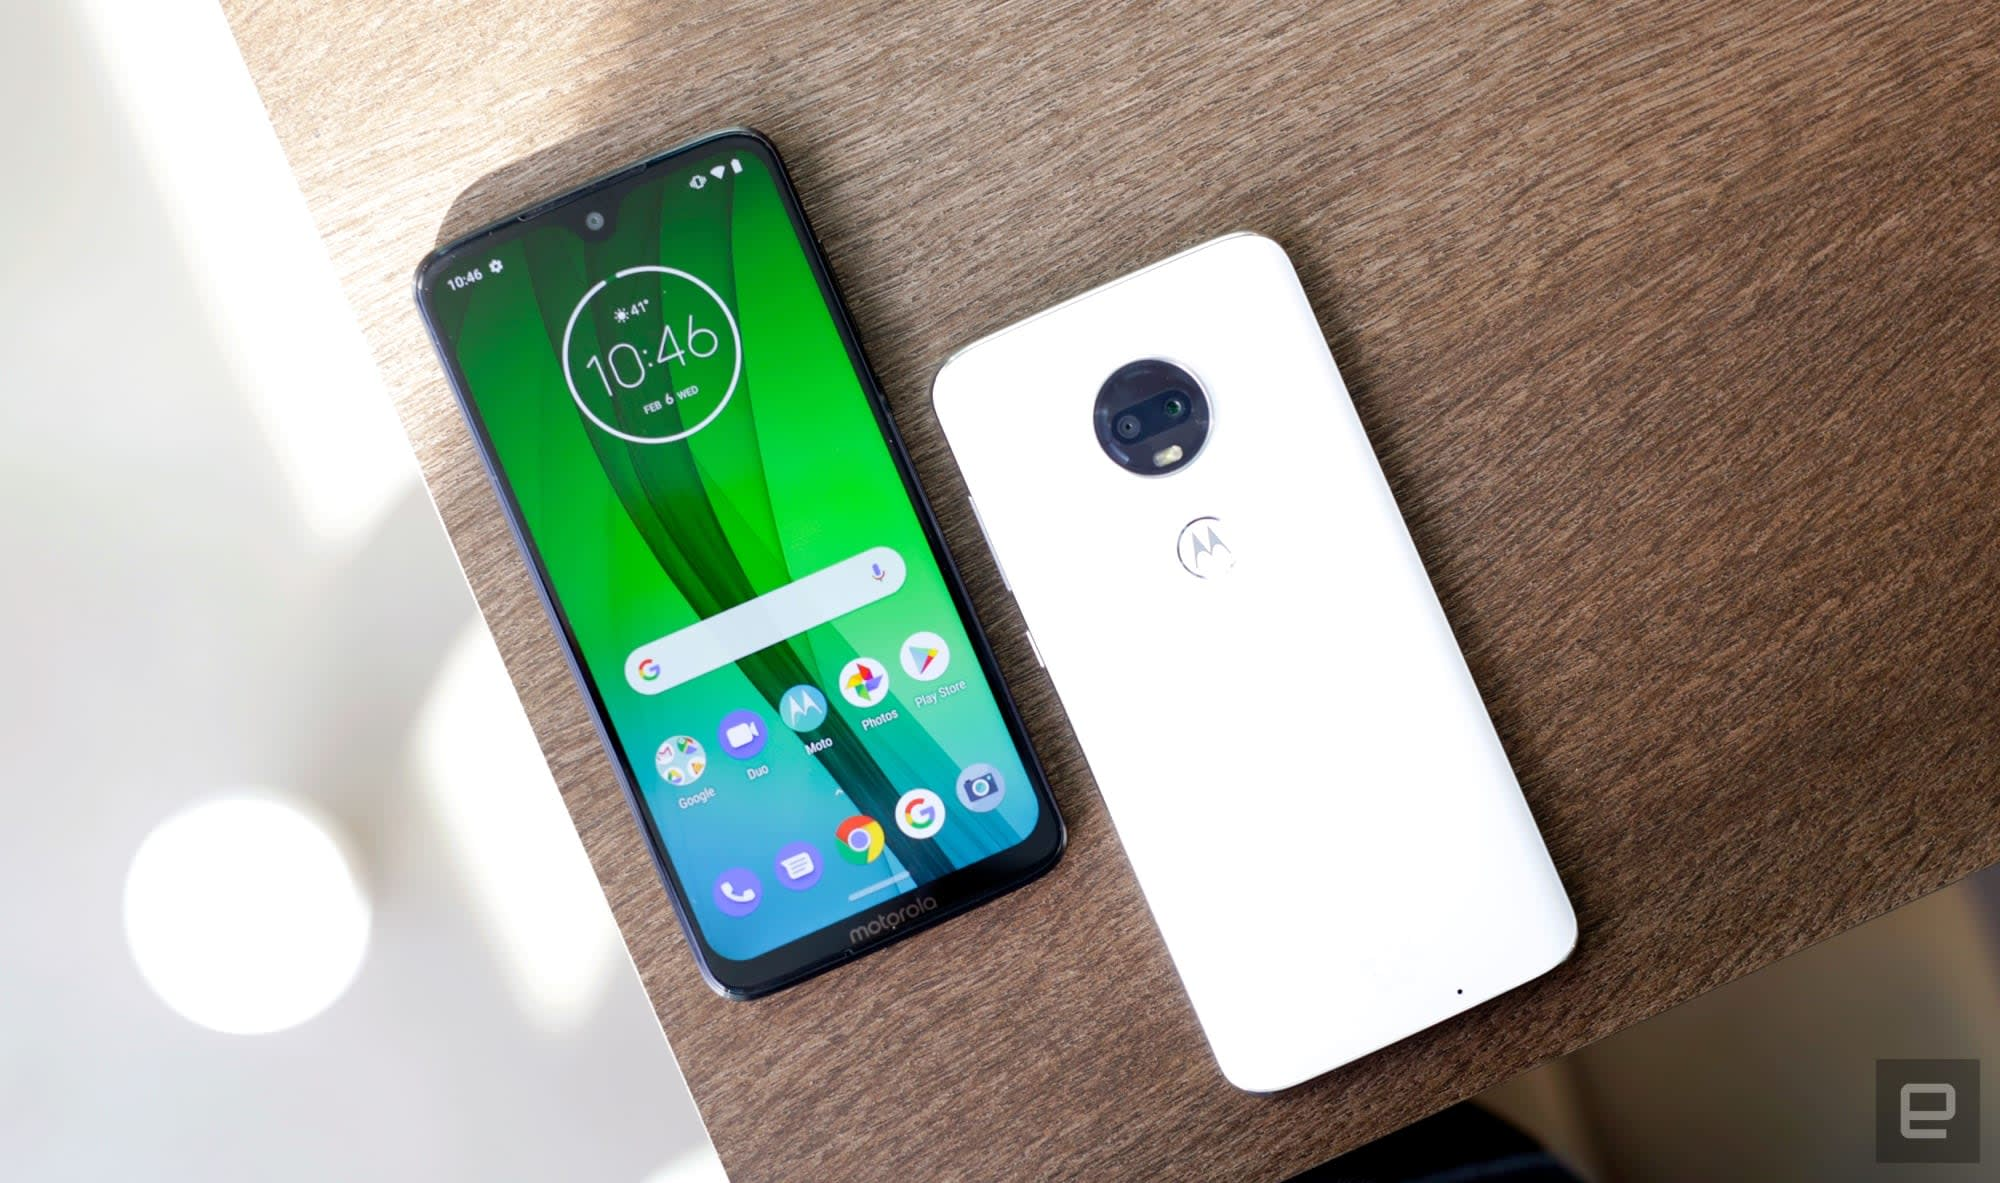 With the Moto G7 family, Motorola has a midrange phone for